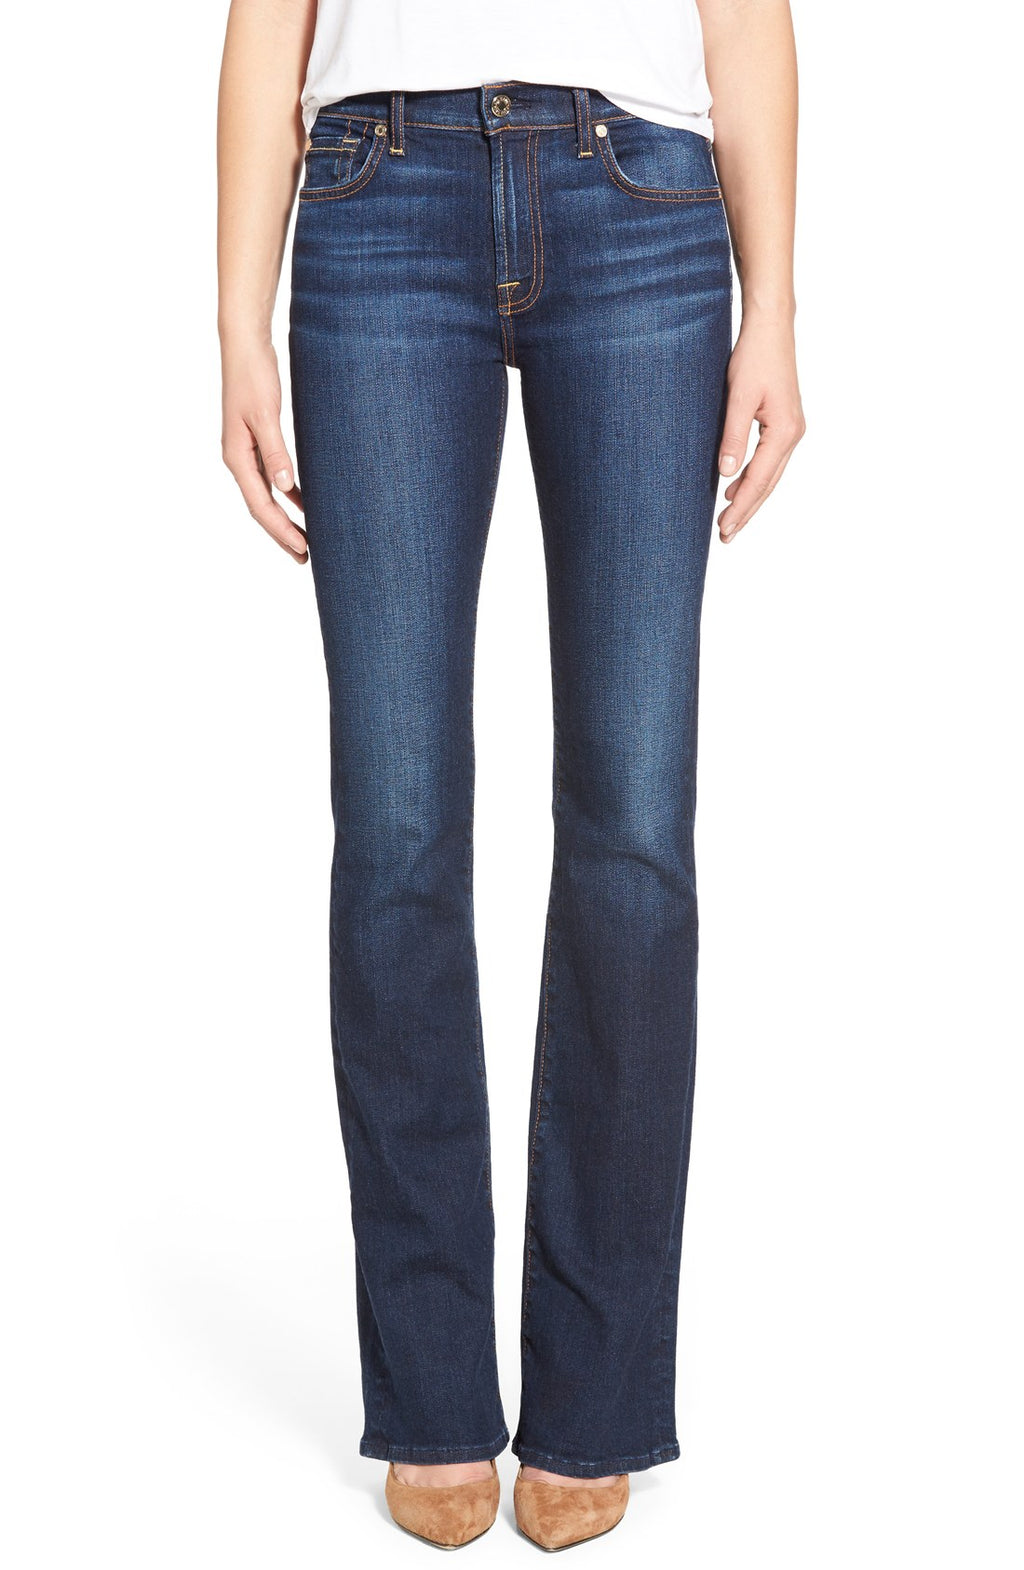 Seven For All Mankind Blue Boot-Cut Jeans Size 30